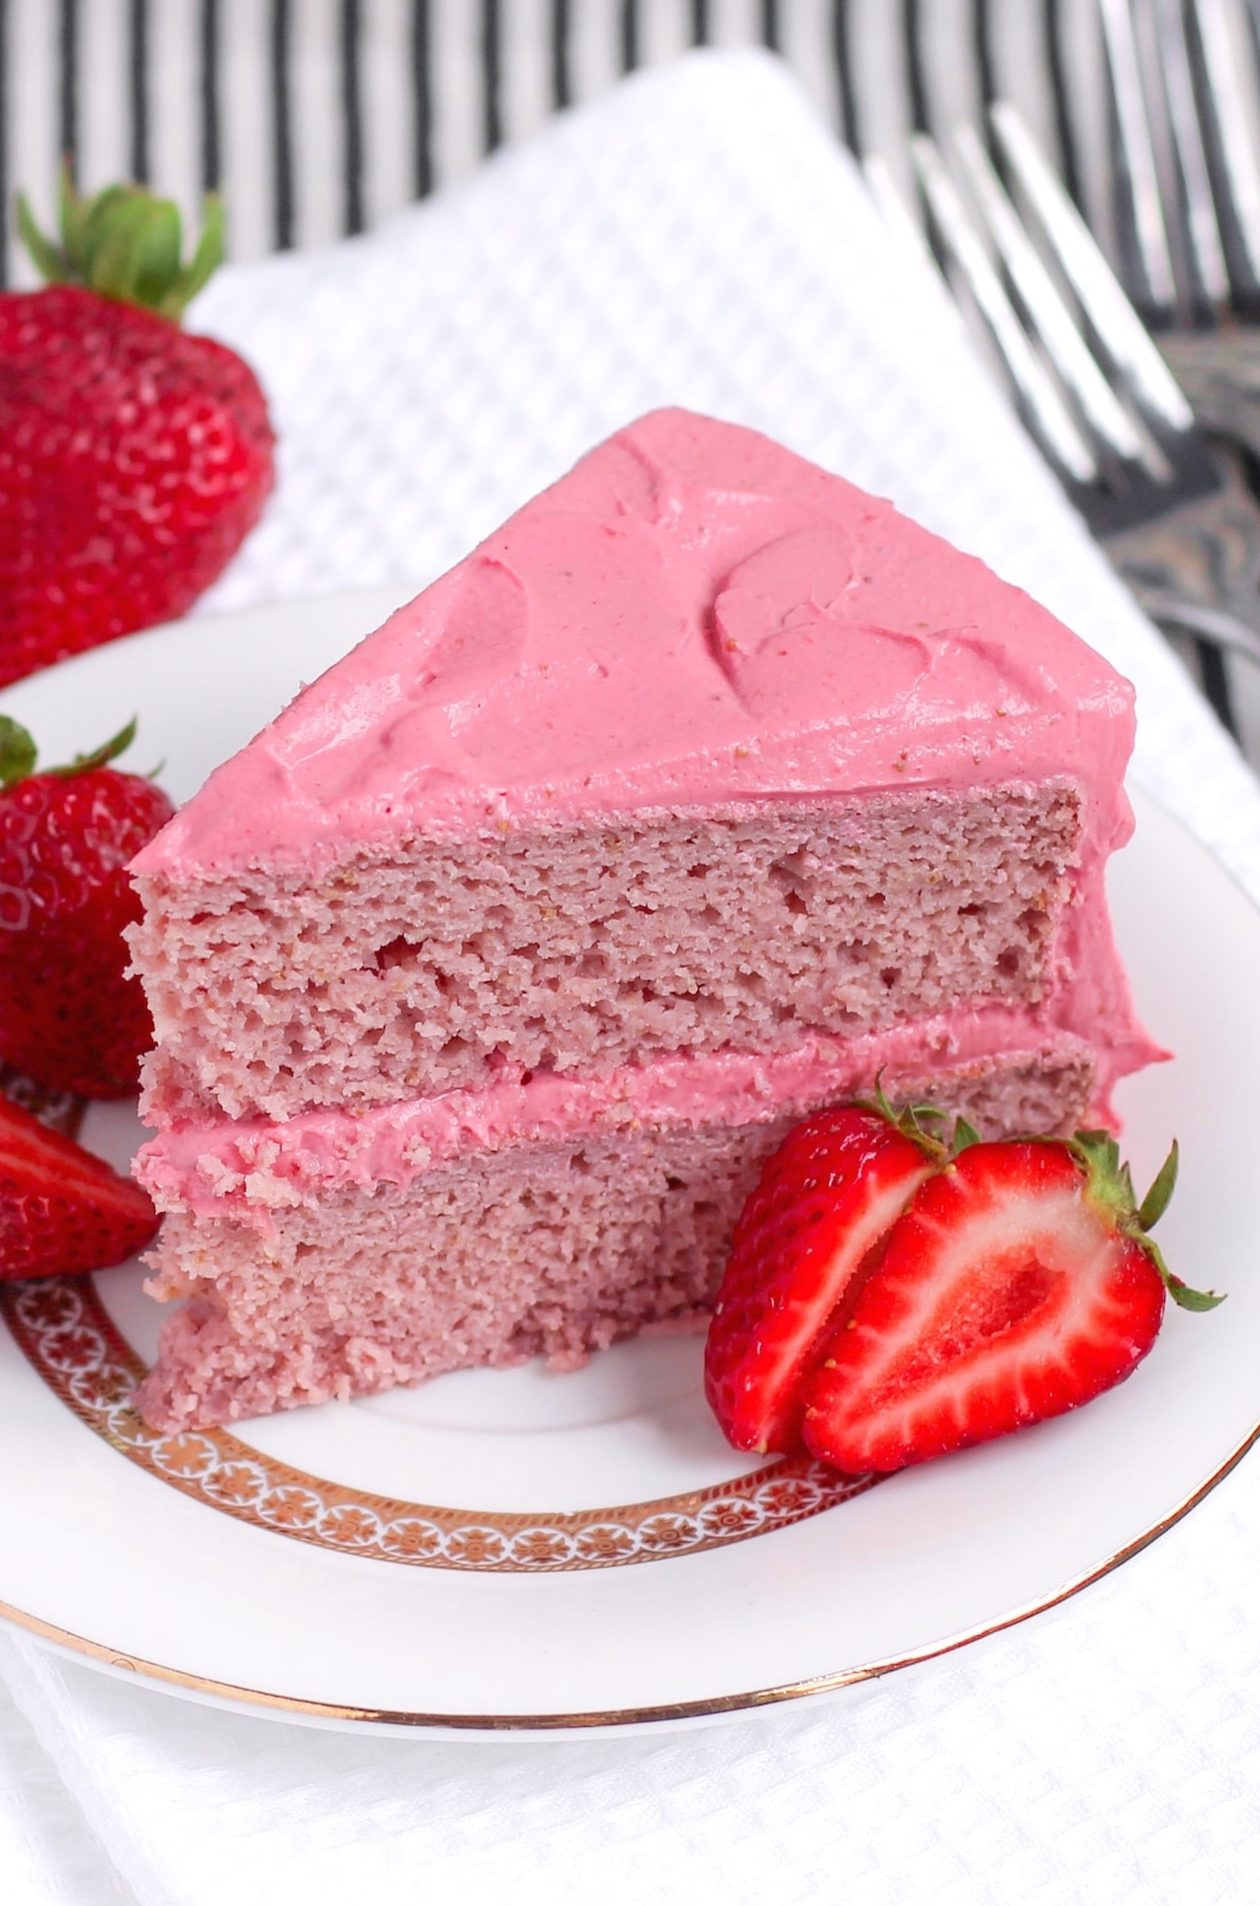 Healthy Strawberry Cake with Strawberry Frosting (refined sugar free, gluten free, high protein, high fiber)